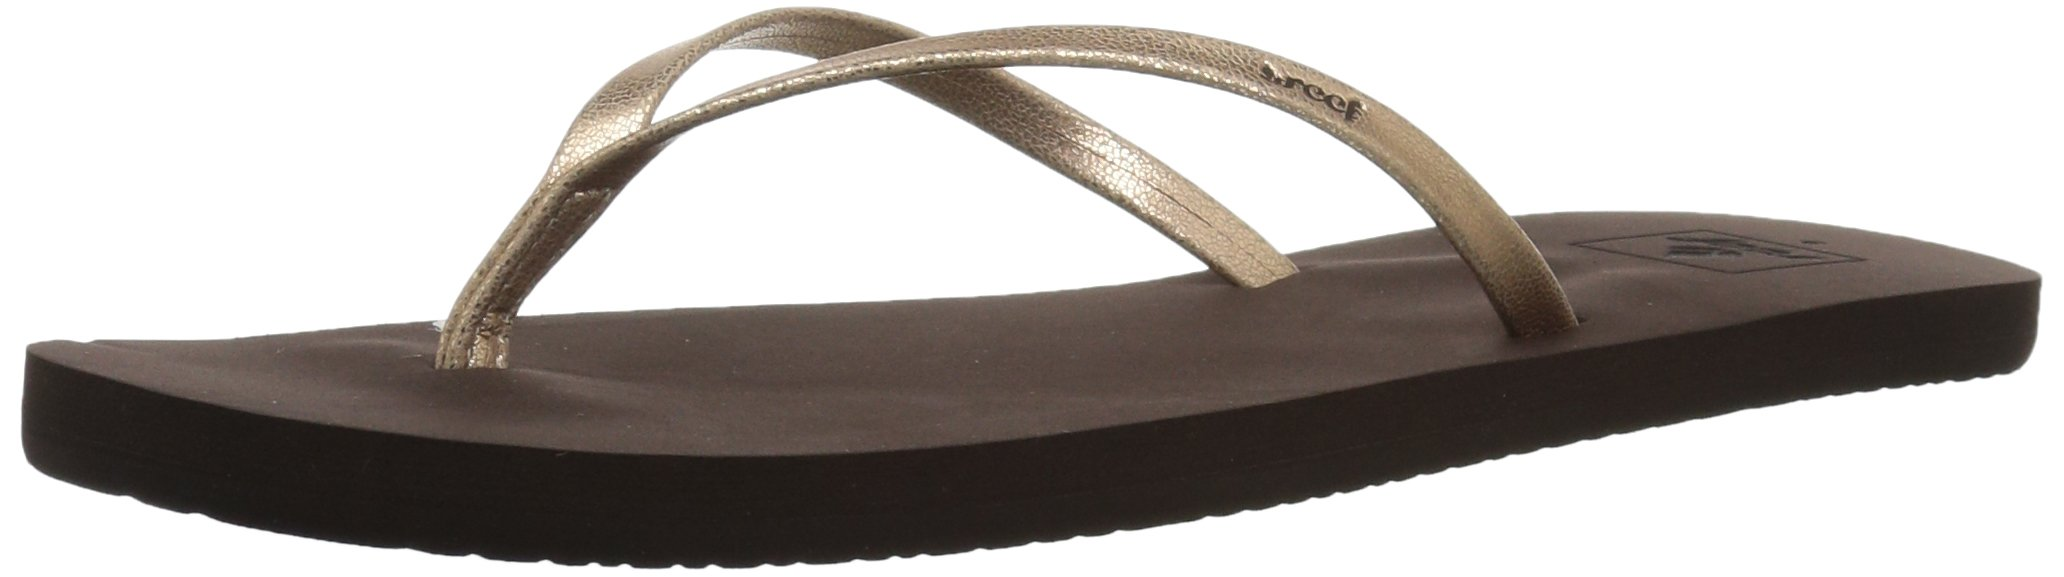 Reef Women's Bliss Nights Flip Flop, Rose Gold, 7 M US